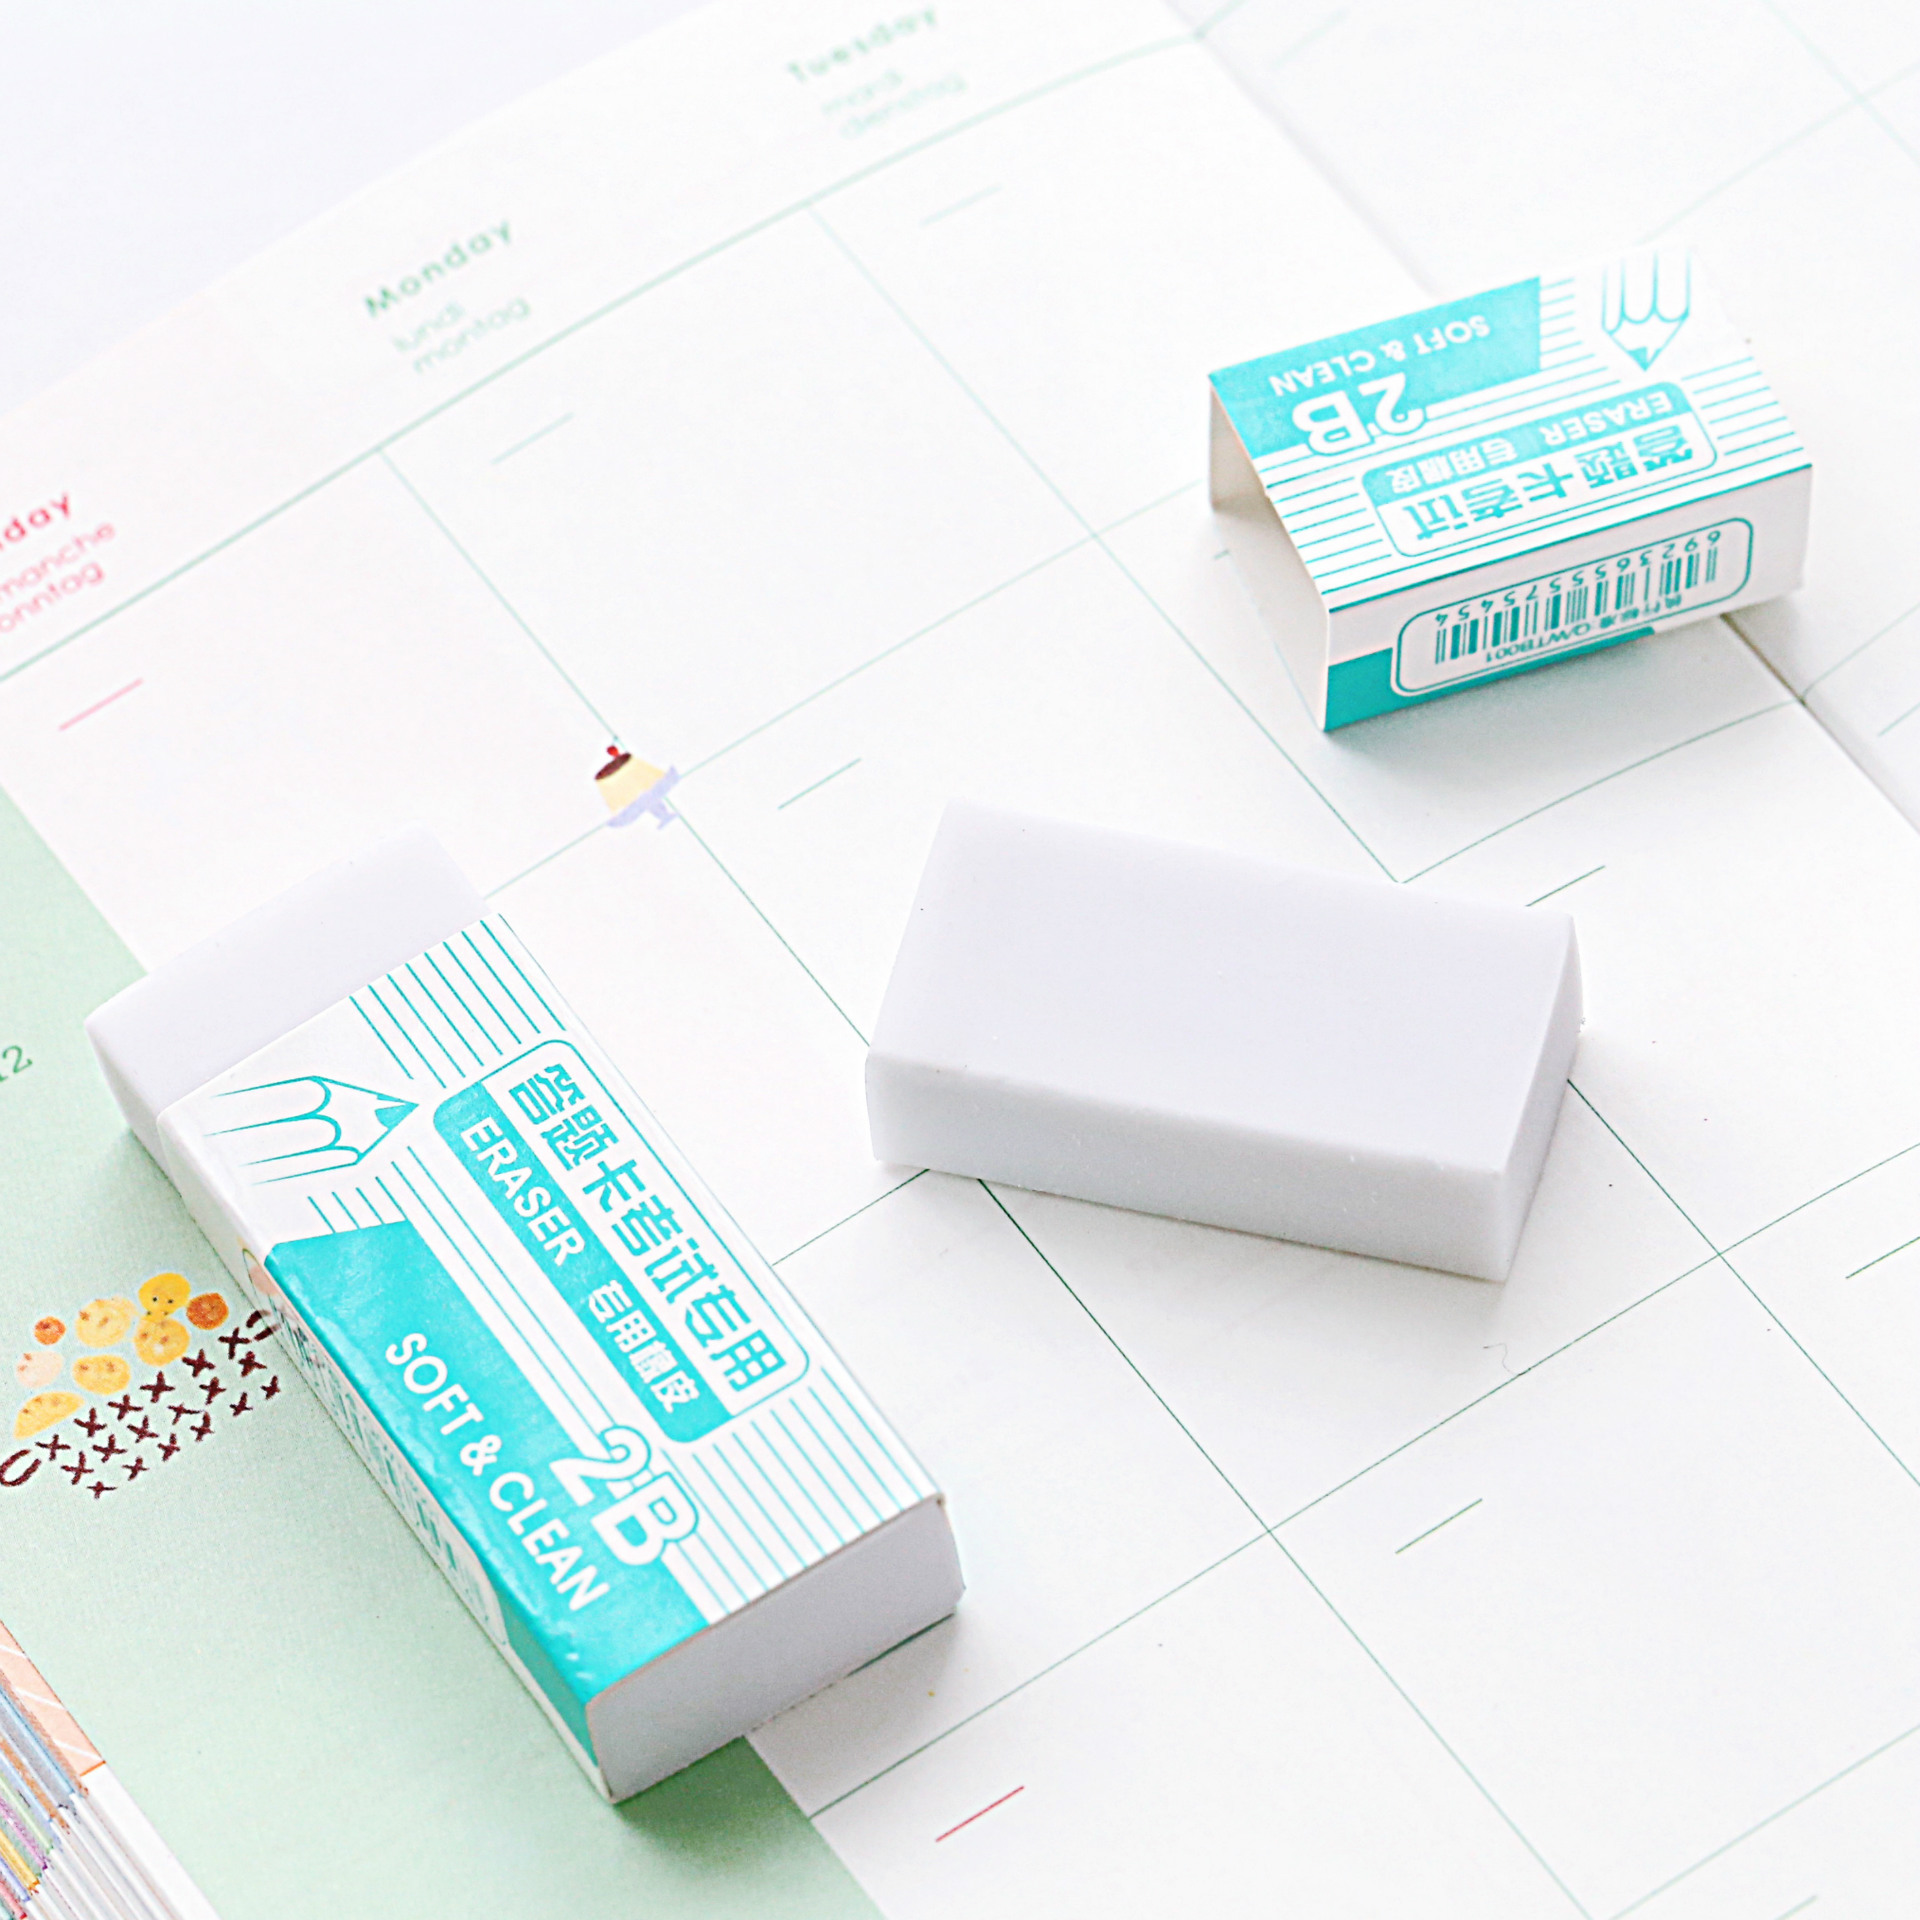 Coloffice Kawaii Eraser Student Supplies Answer Sheet 2B Exam Writing Dedicated Rubber White Ordinary Stationary Eraser 1piece